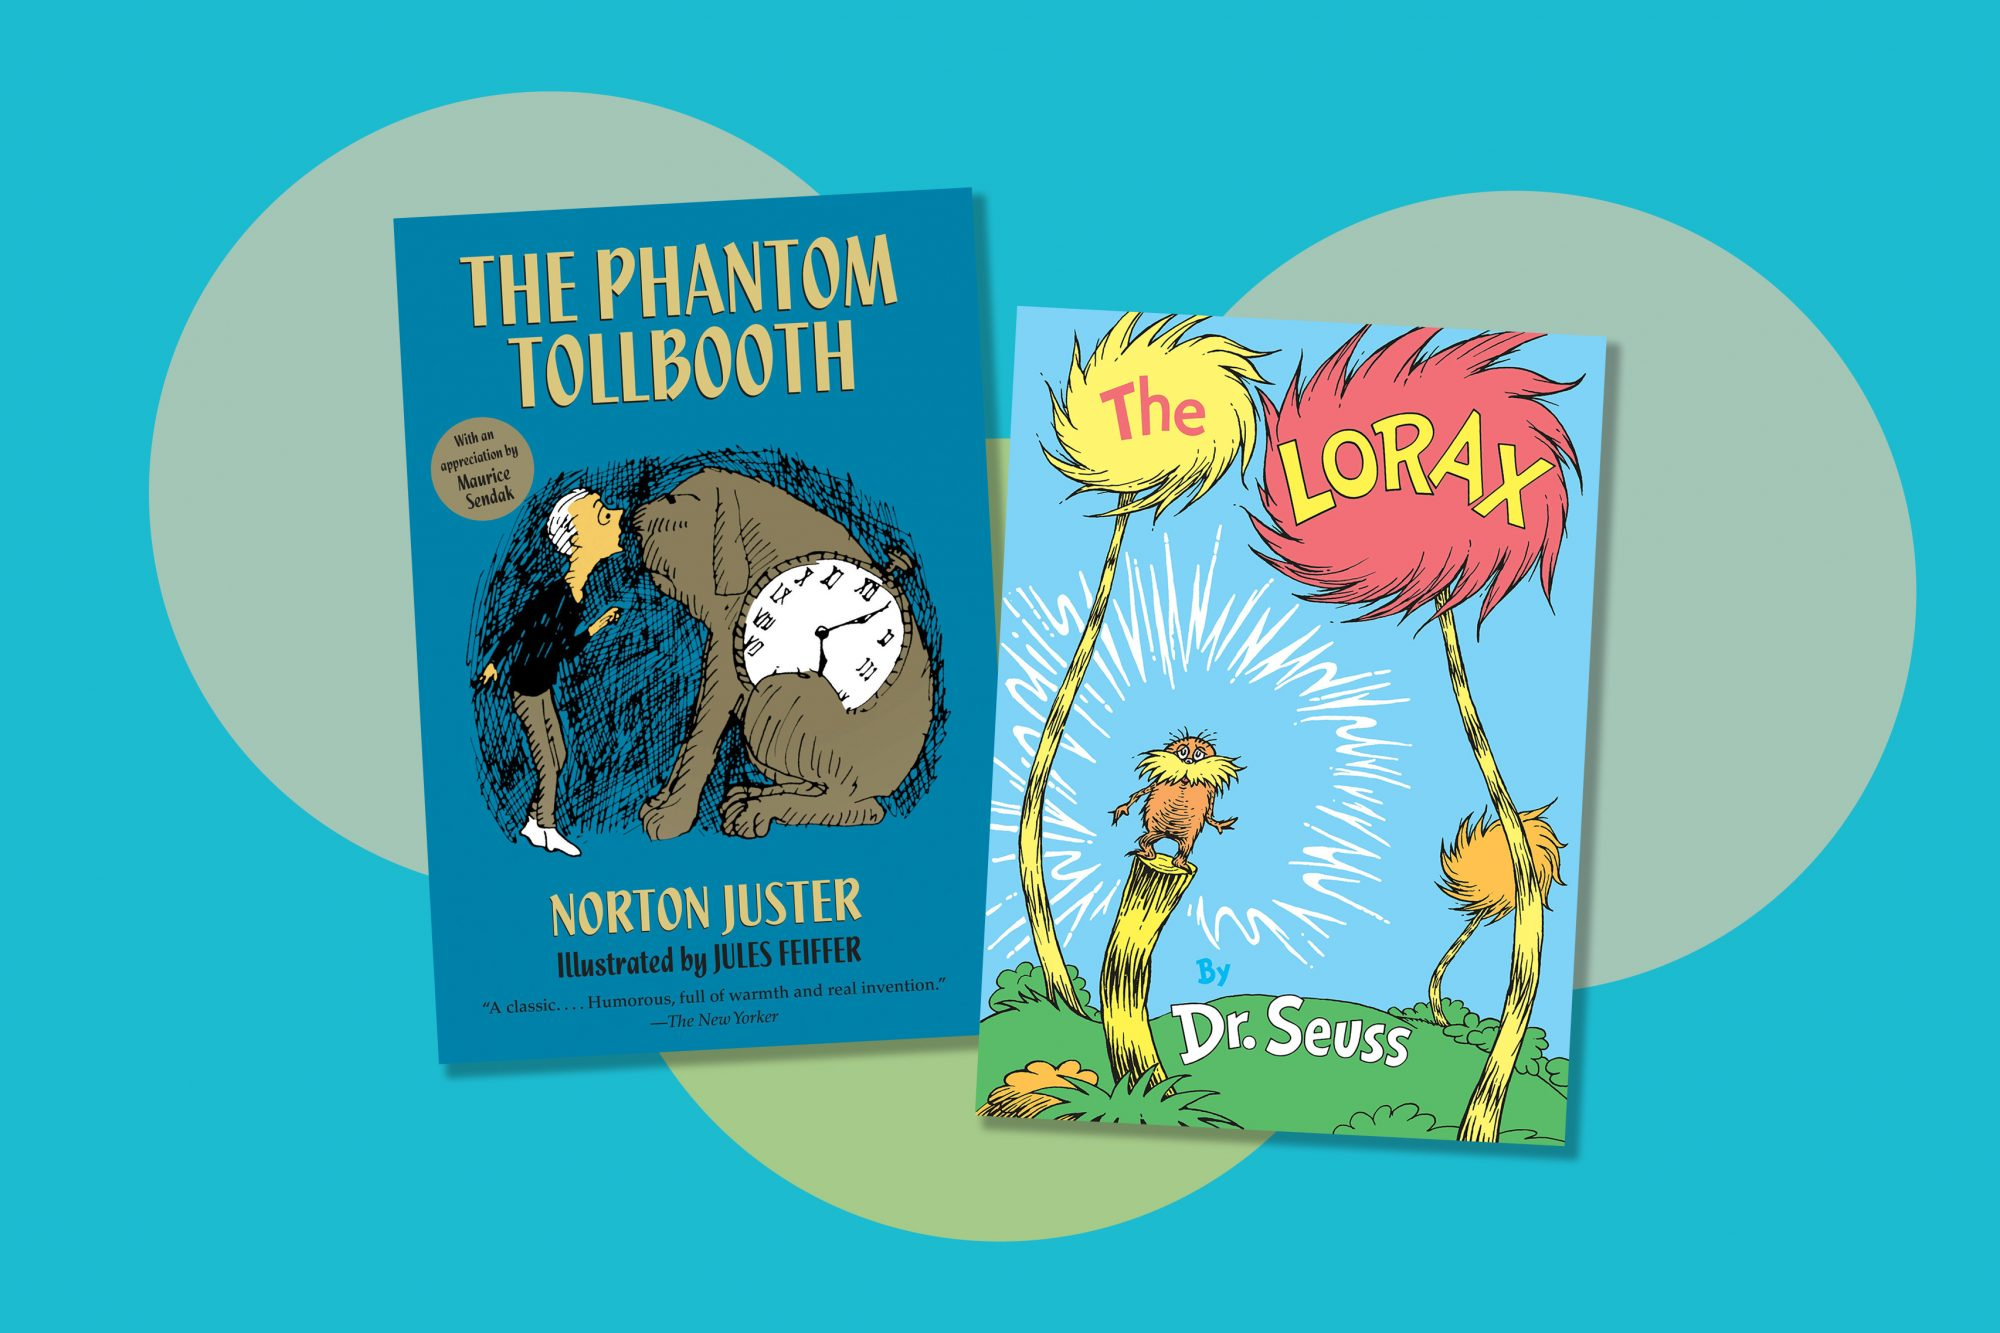 The Phantom Tollbooth Book Cover and The Lorax Book Cover